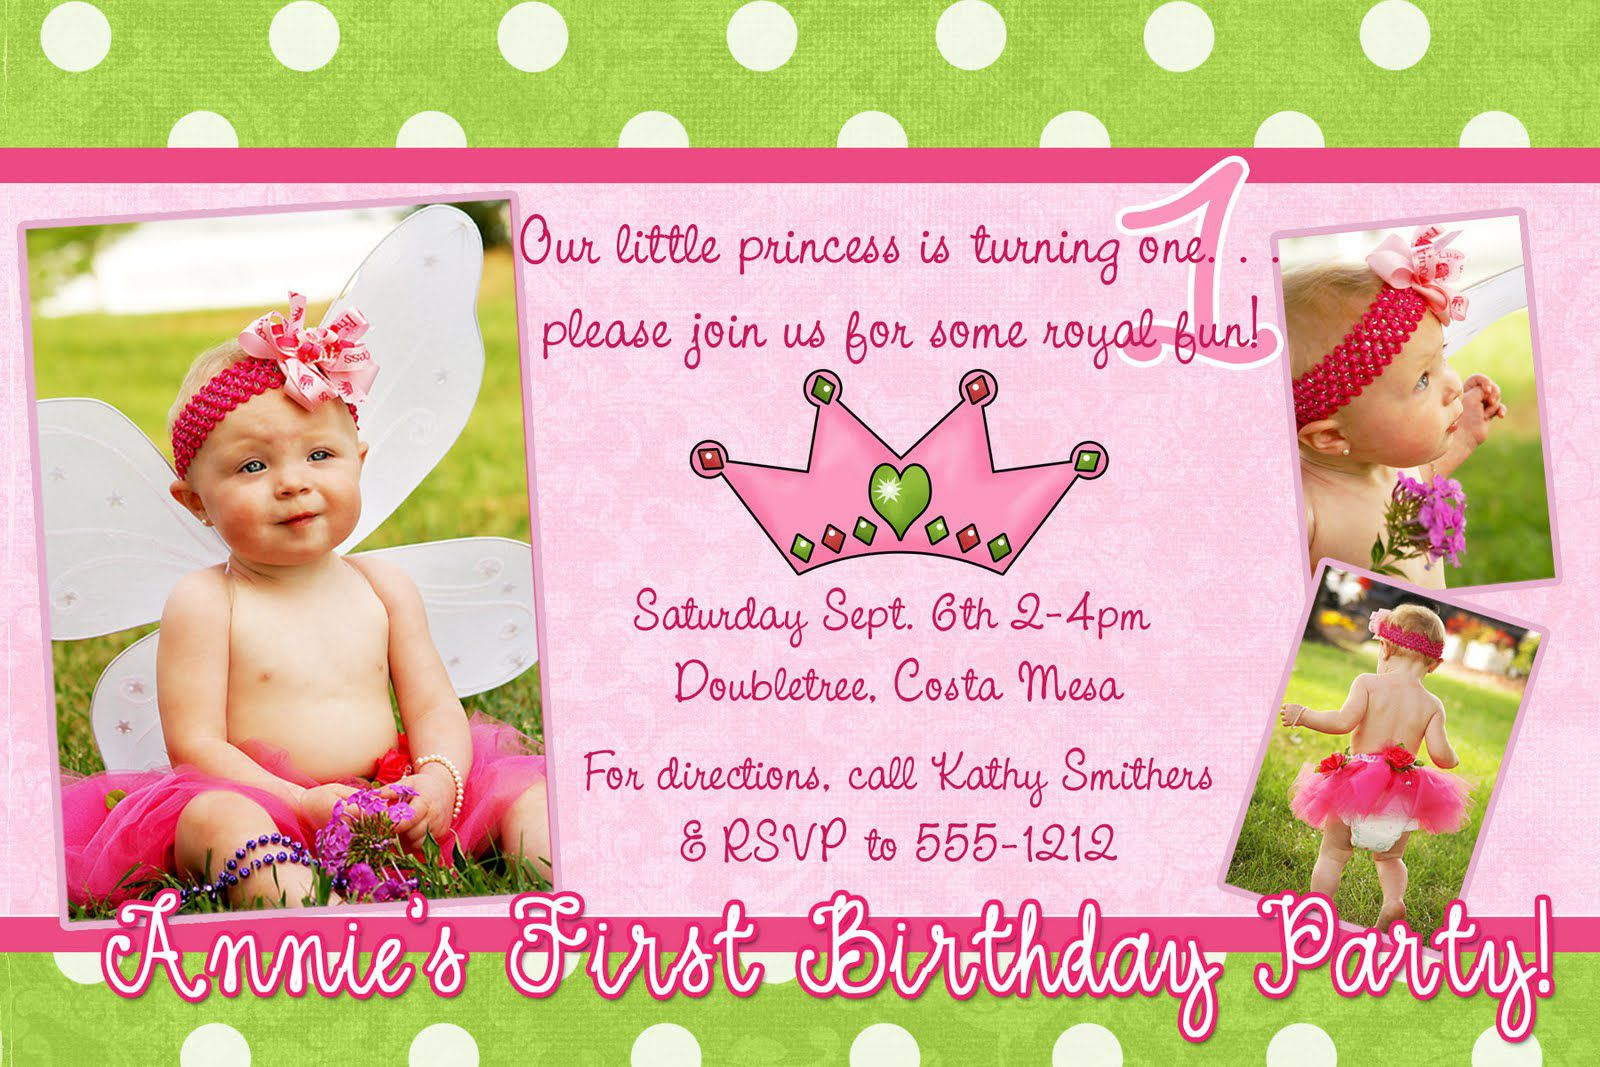 Kids birthday party invitations templates datariouruguay stopboris Images